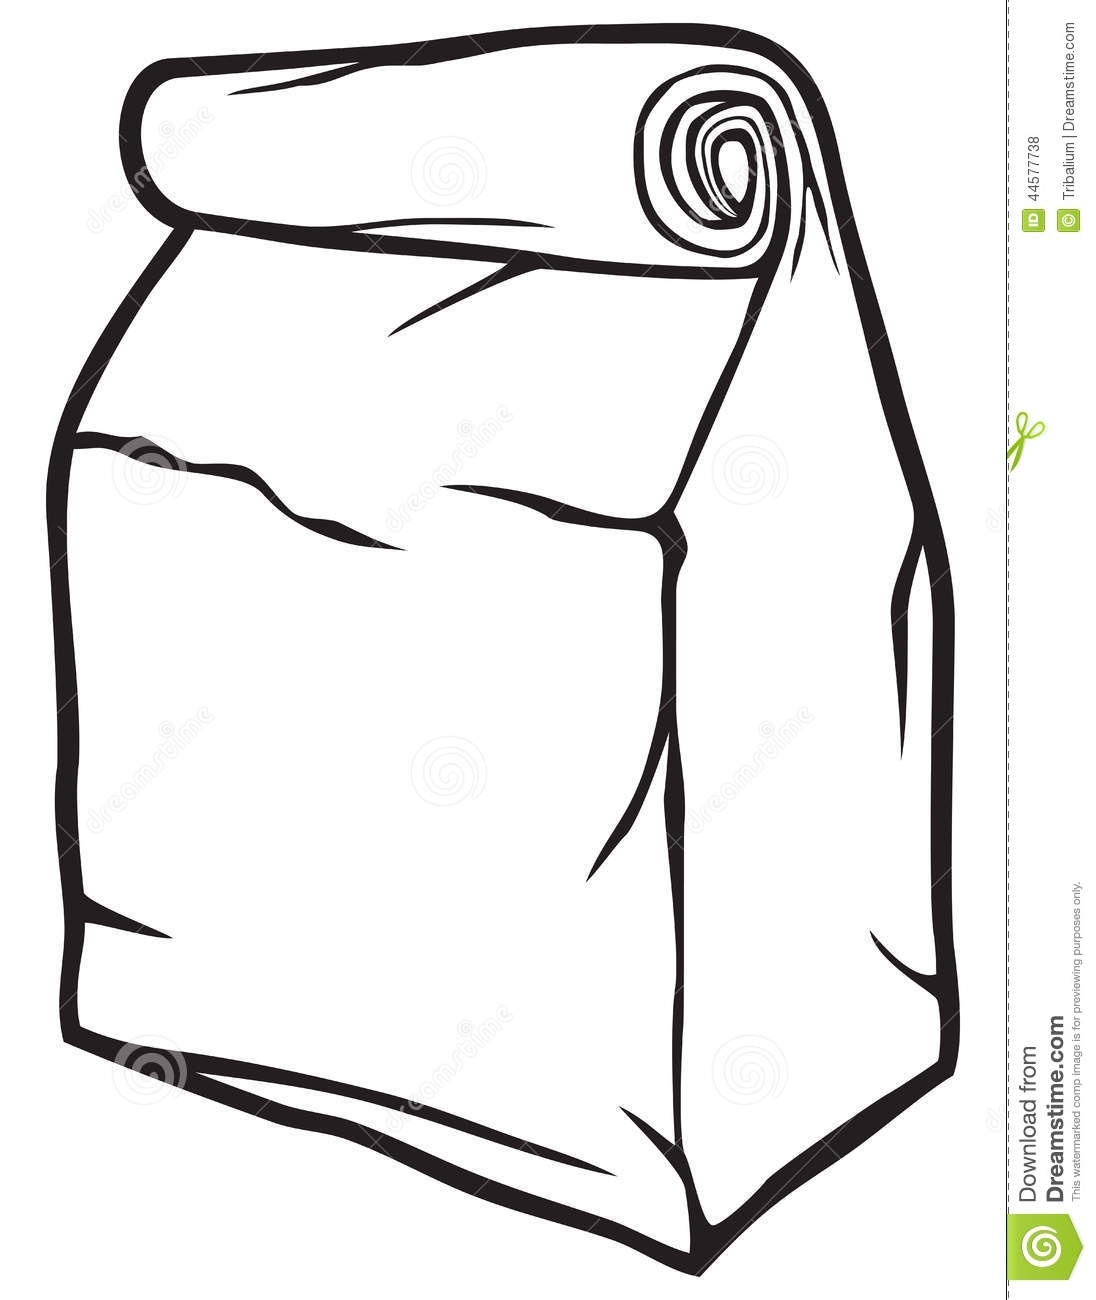 Bag clipart paper bag. Black and white letters